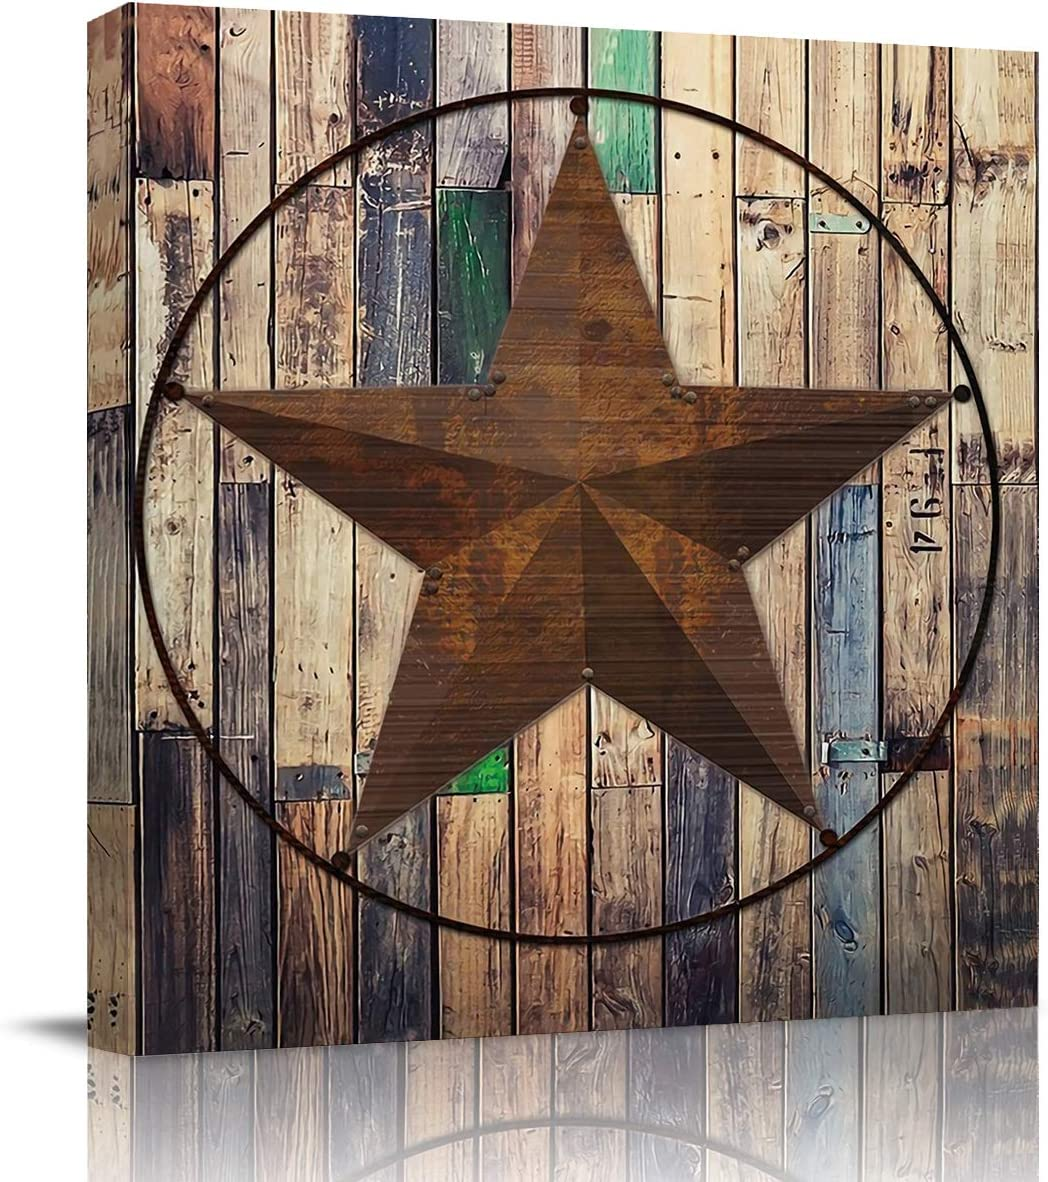 Wall Art Oil Paintings on Canvas Print Rustic Vintage Western Texas Star Barn Wooden Office Artwork Home Decoration Living Room Bedroom Bathroom Giclee Walls Decor,Wooden Framed Ready to Hang 12x12in